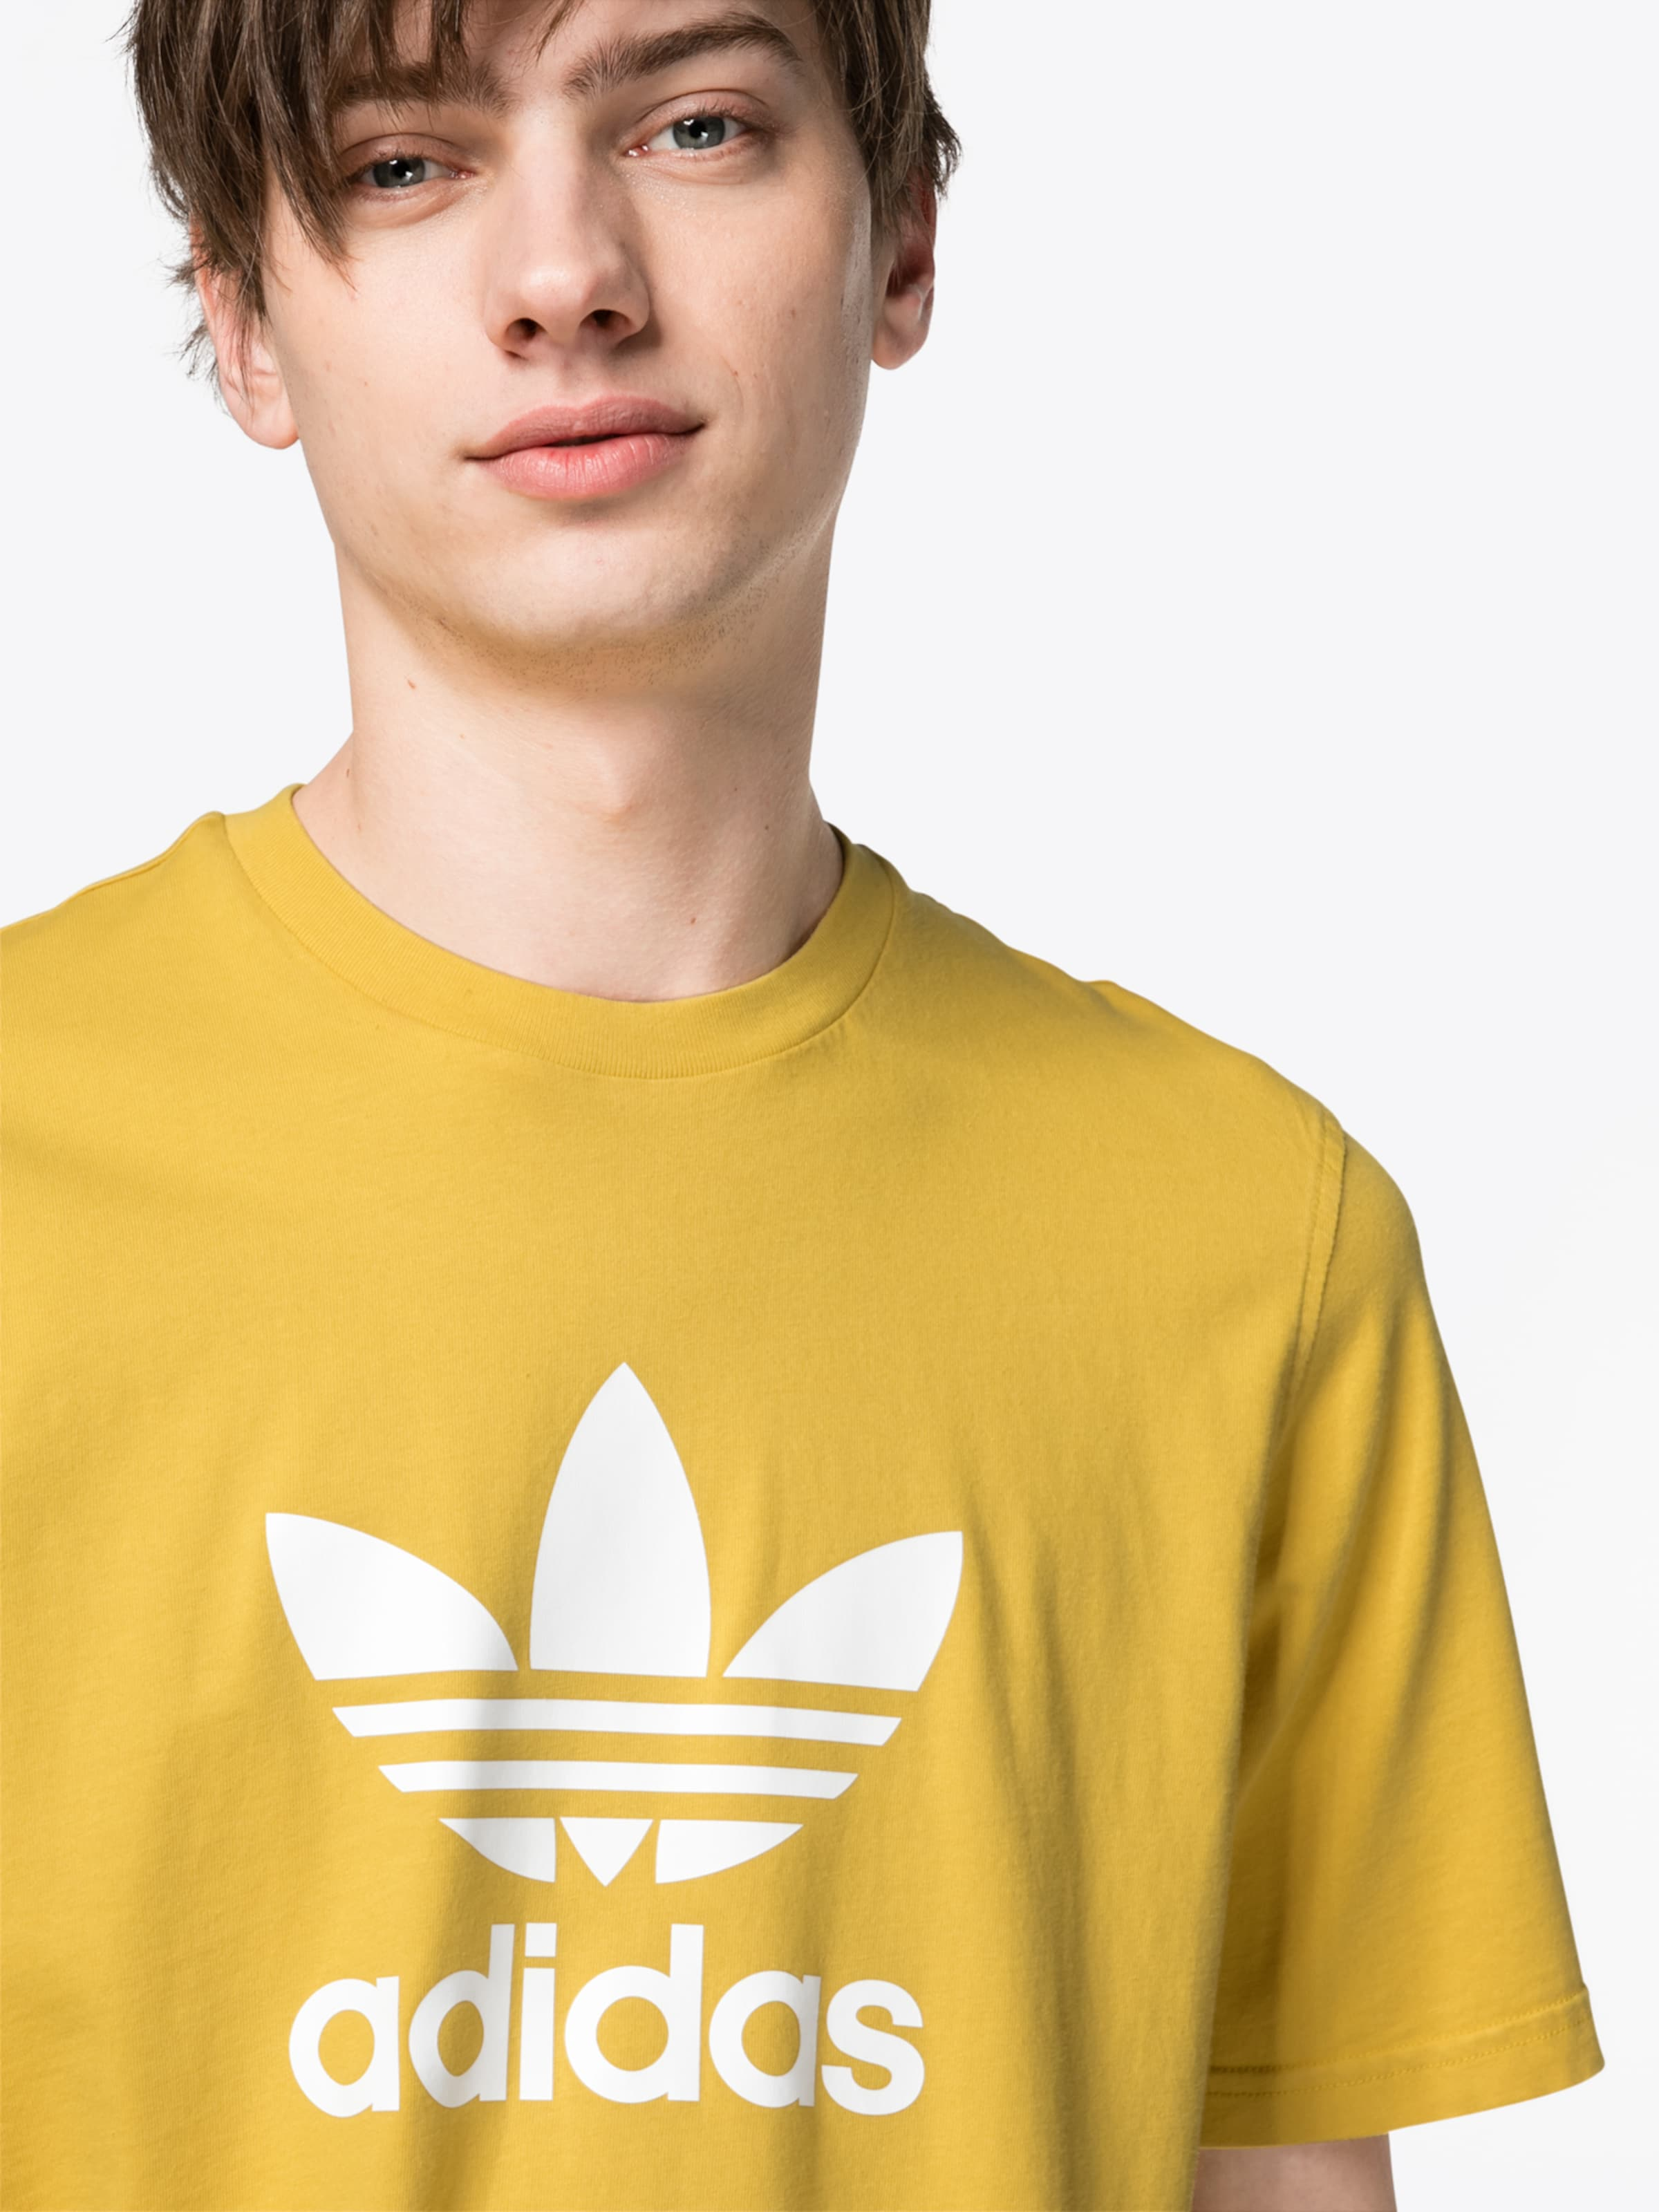 ADIDAS ORIGINALS T-Shirt 'TREFOIL' Outlet Kaufen FpHV7L